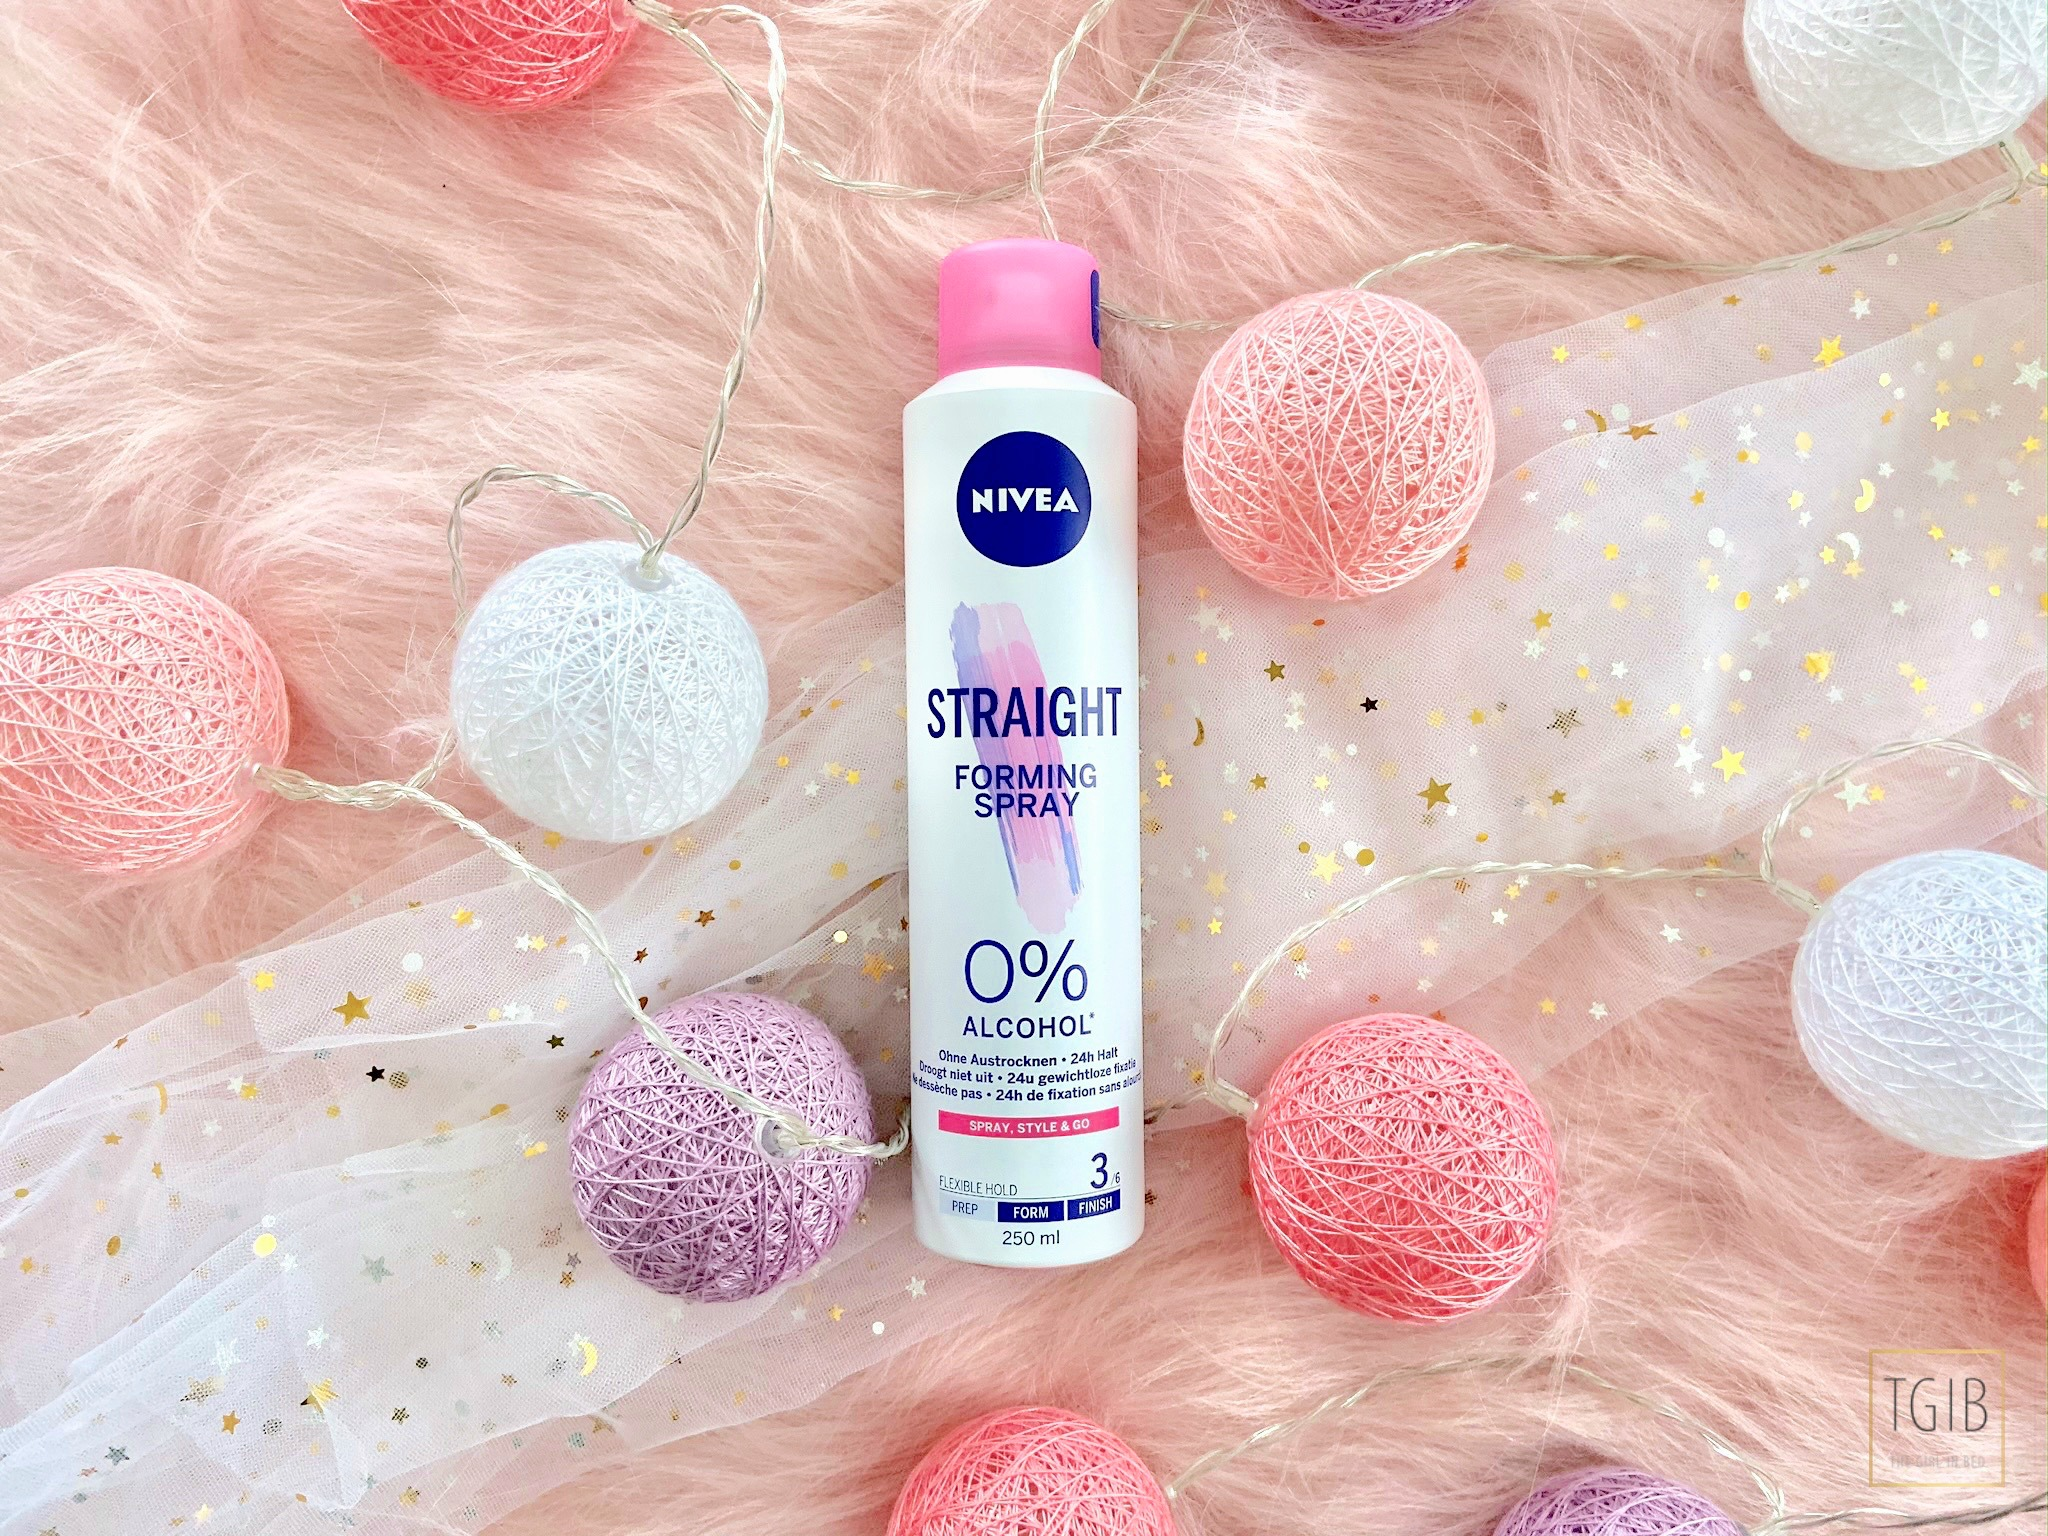 Nivea Styling producten straight forming spray